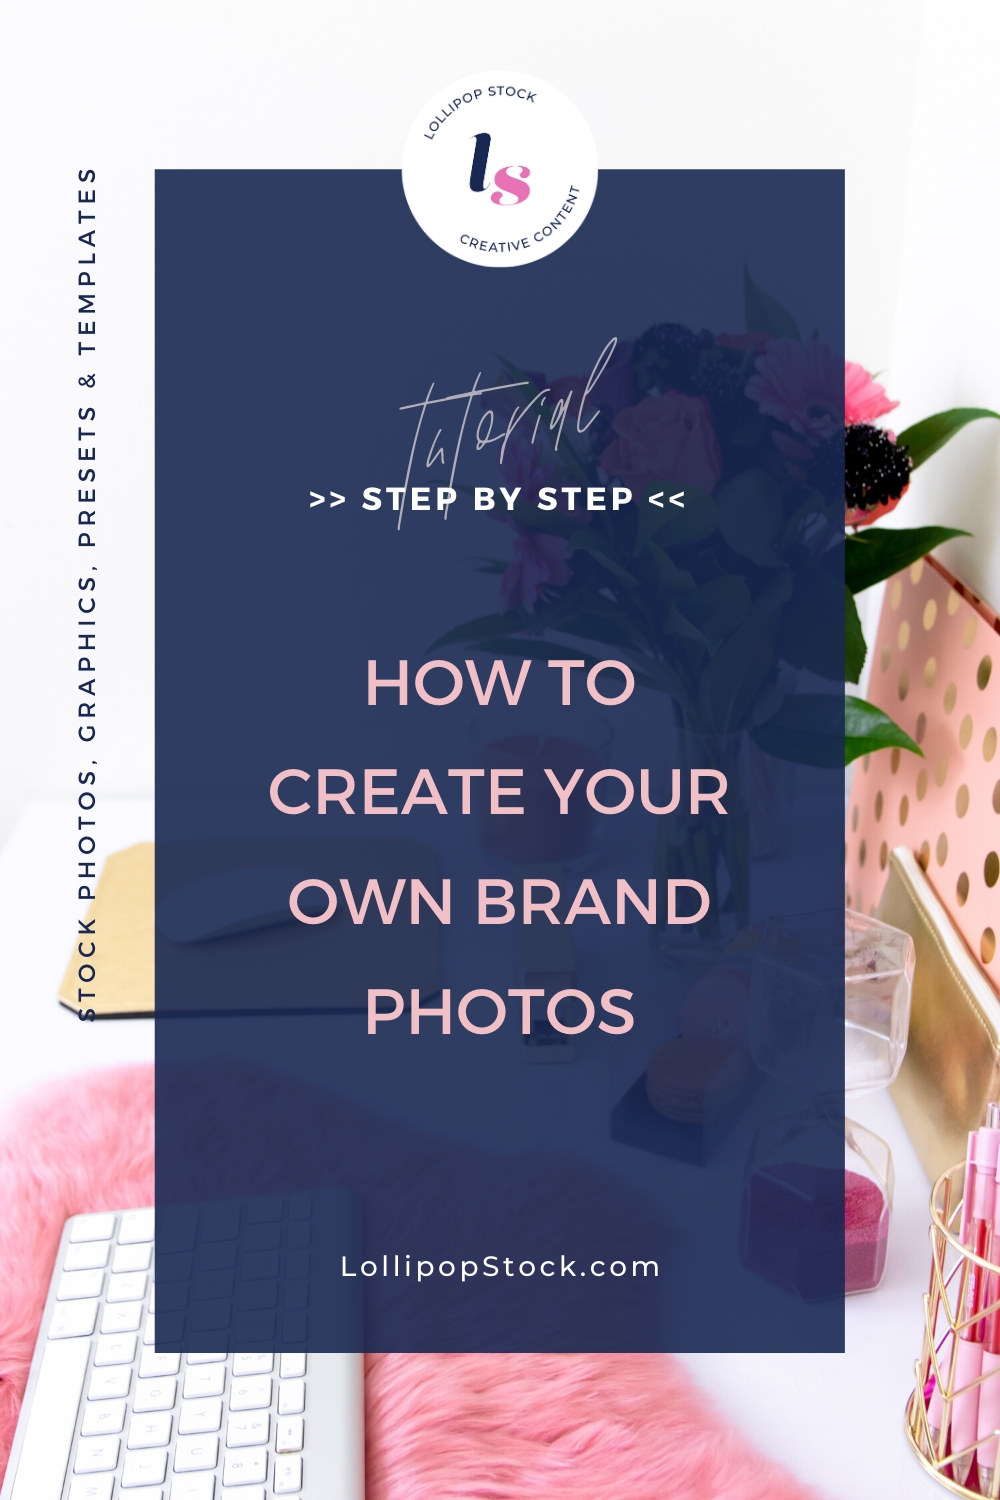 From Idea to Execution: How to Create On-Brand Photos at Home